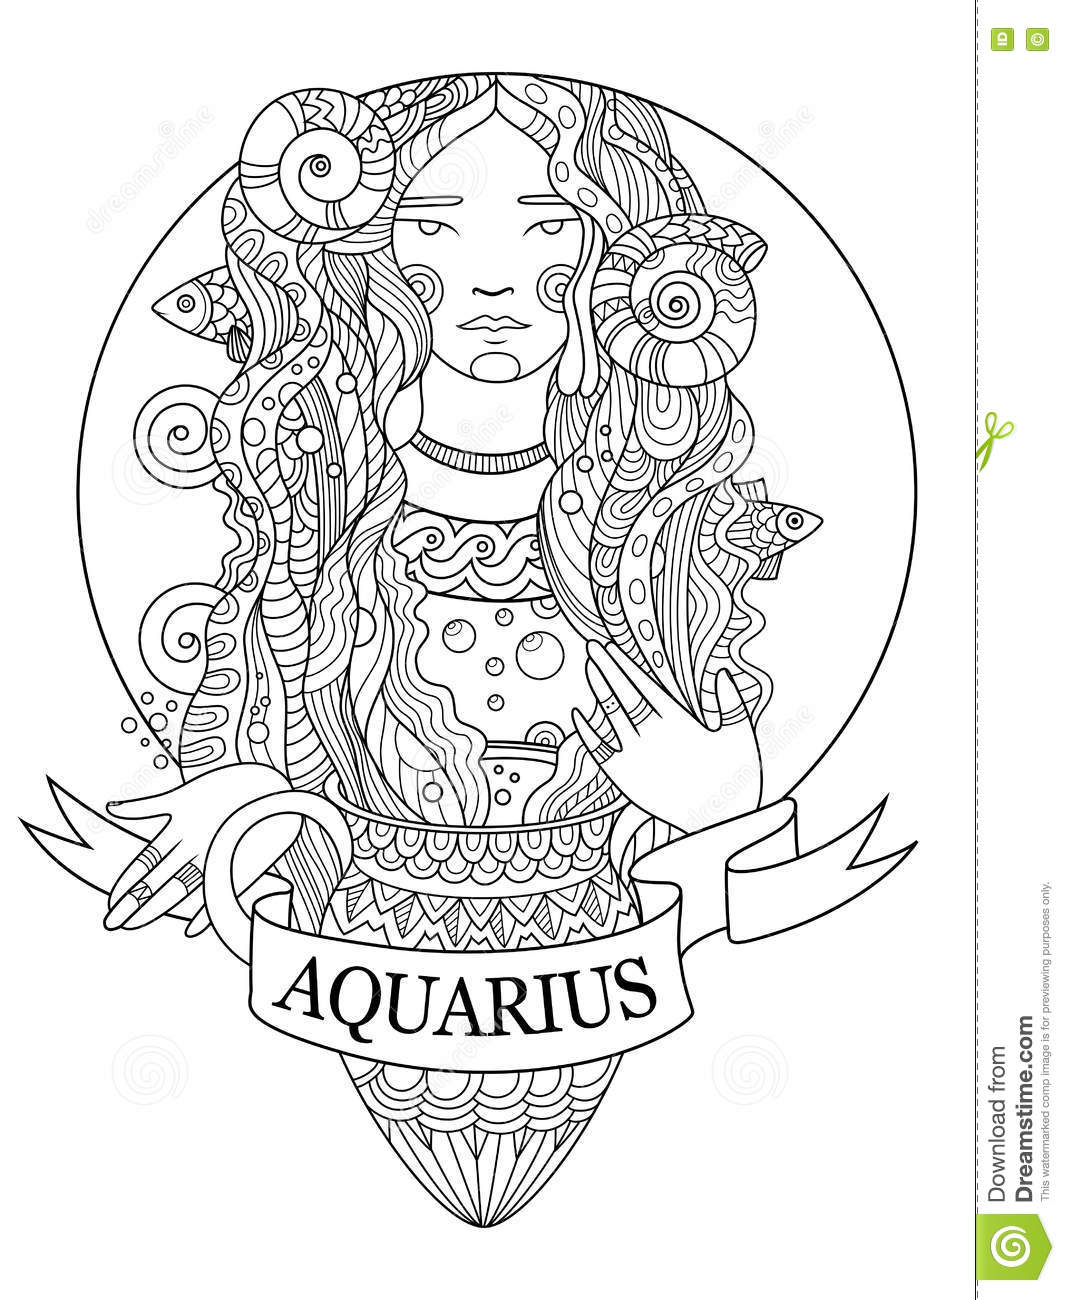 Aquarius Zodiac Sign Coloring Book